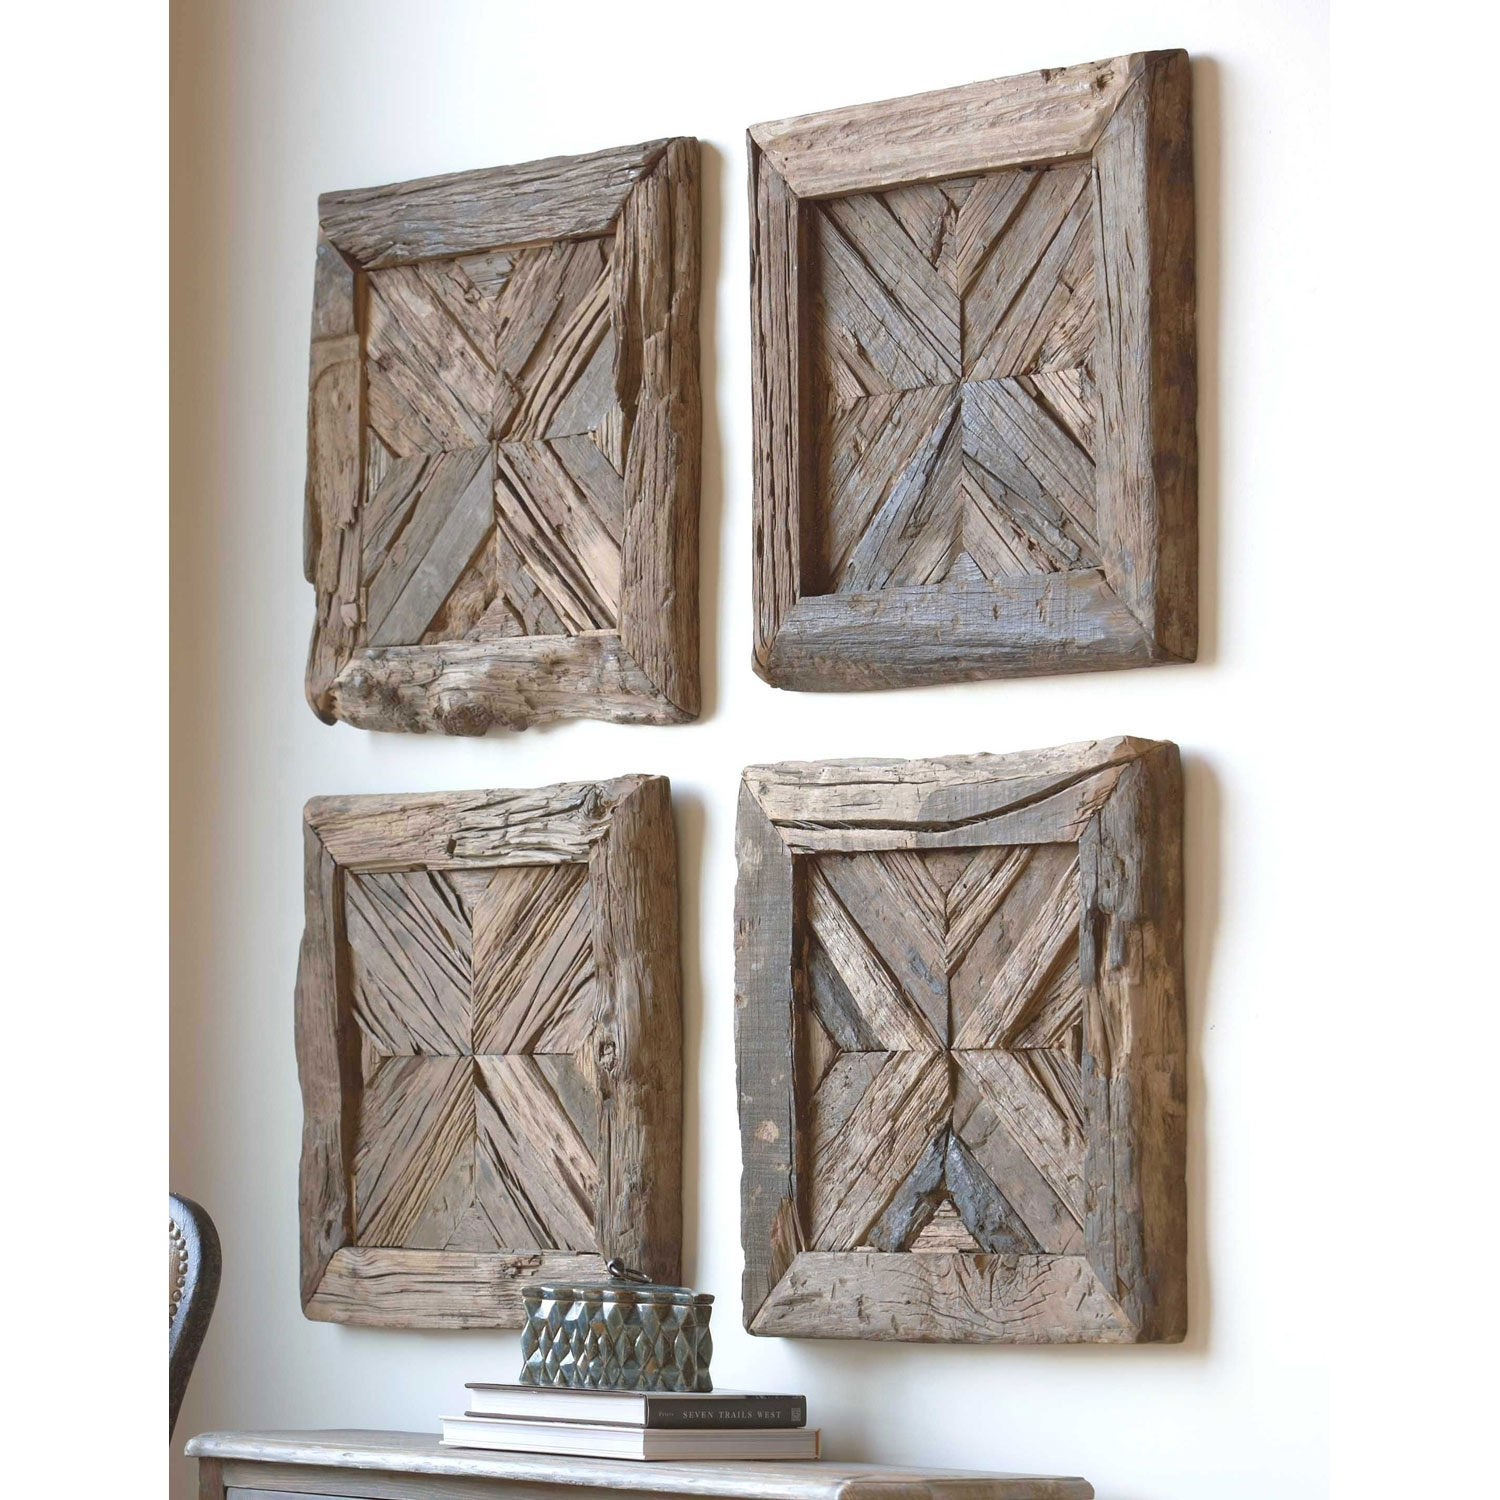 Uttermost Rennick Rustic Wood Wall Art 04014 | Bellacor With Most Current Uttermost Wall Art (View 3 of 20)